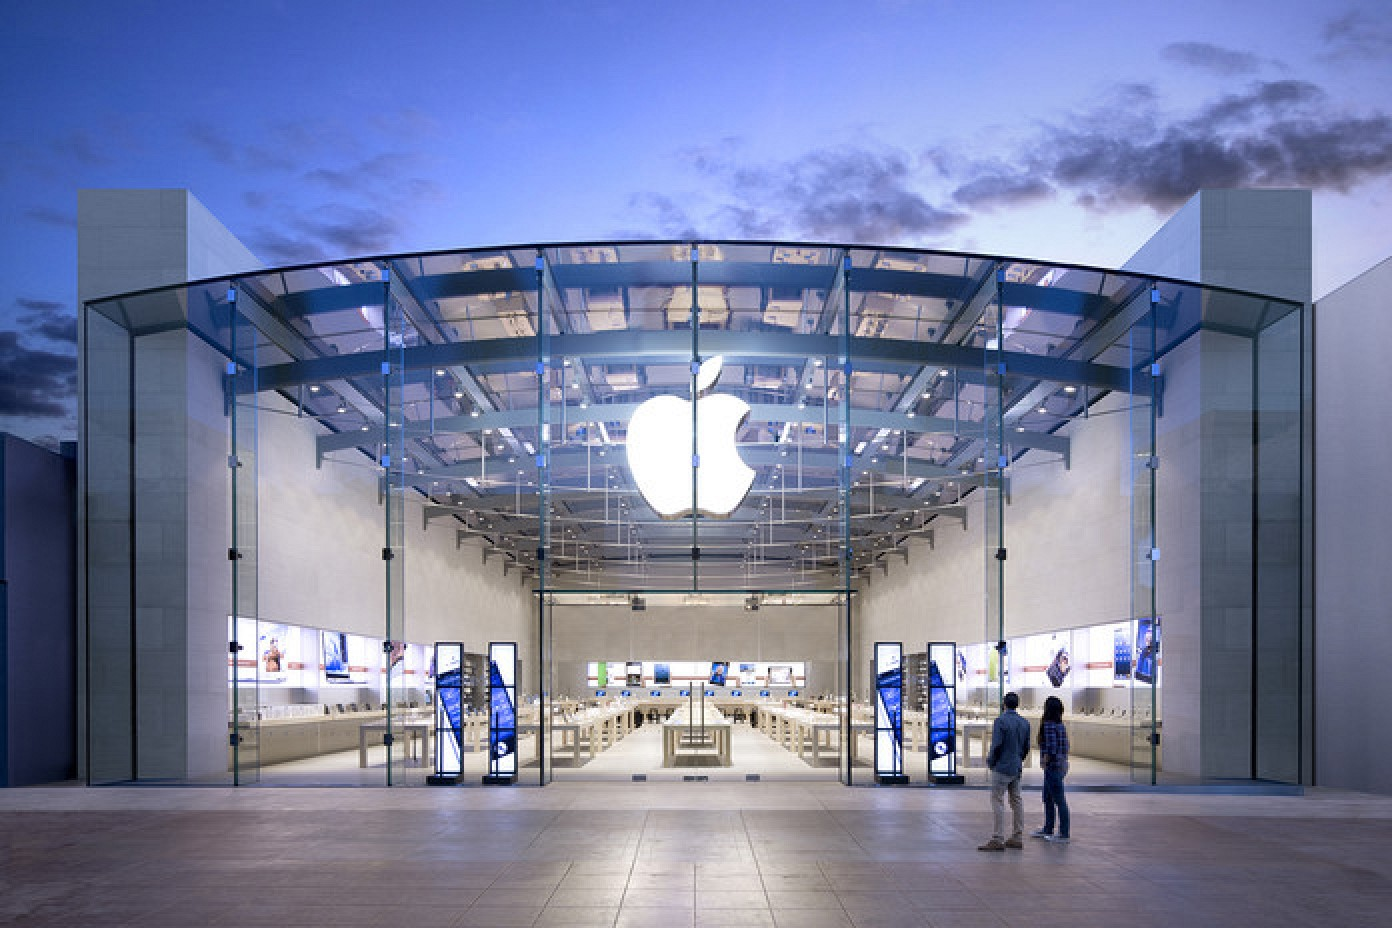 Apple Store Openings this Month: The Westchester, Third Street Promenade, Bangkok, and Likely Champs-Élysées